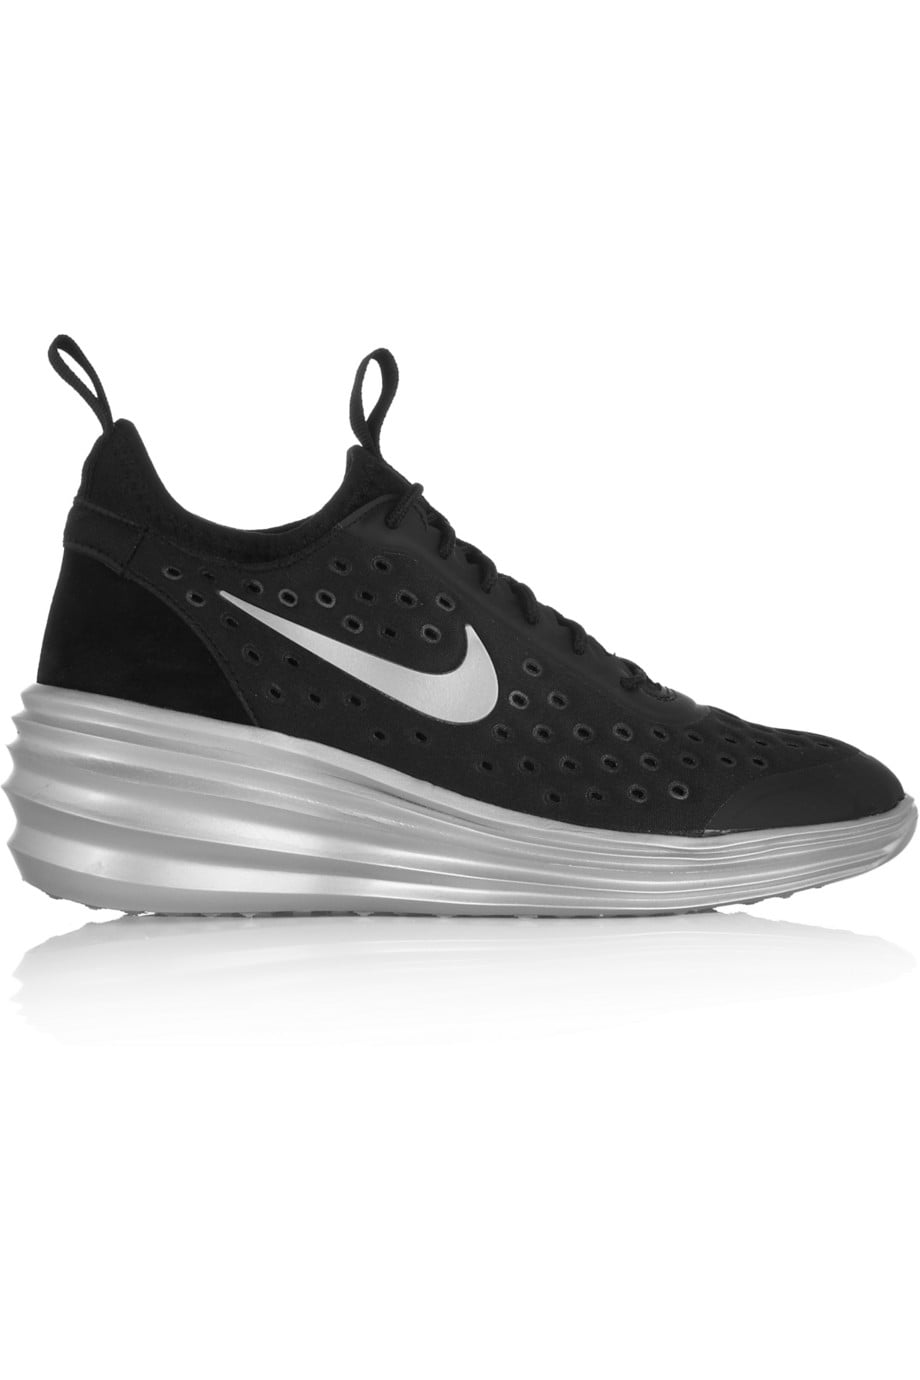 Nike LunarElite Sky Hi Canvas and Suede Wedge Sneakers